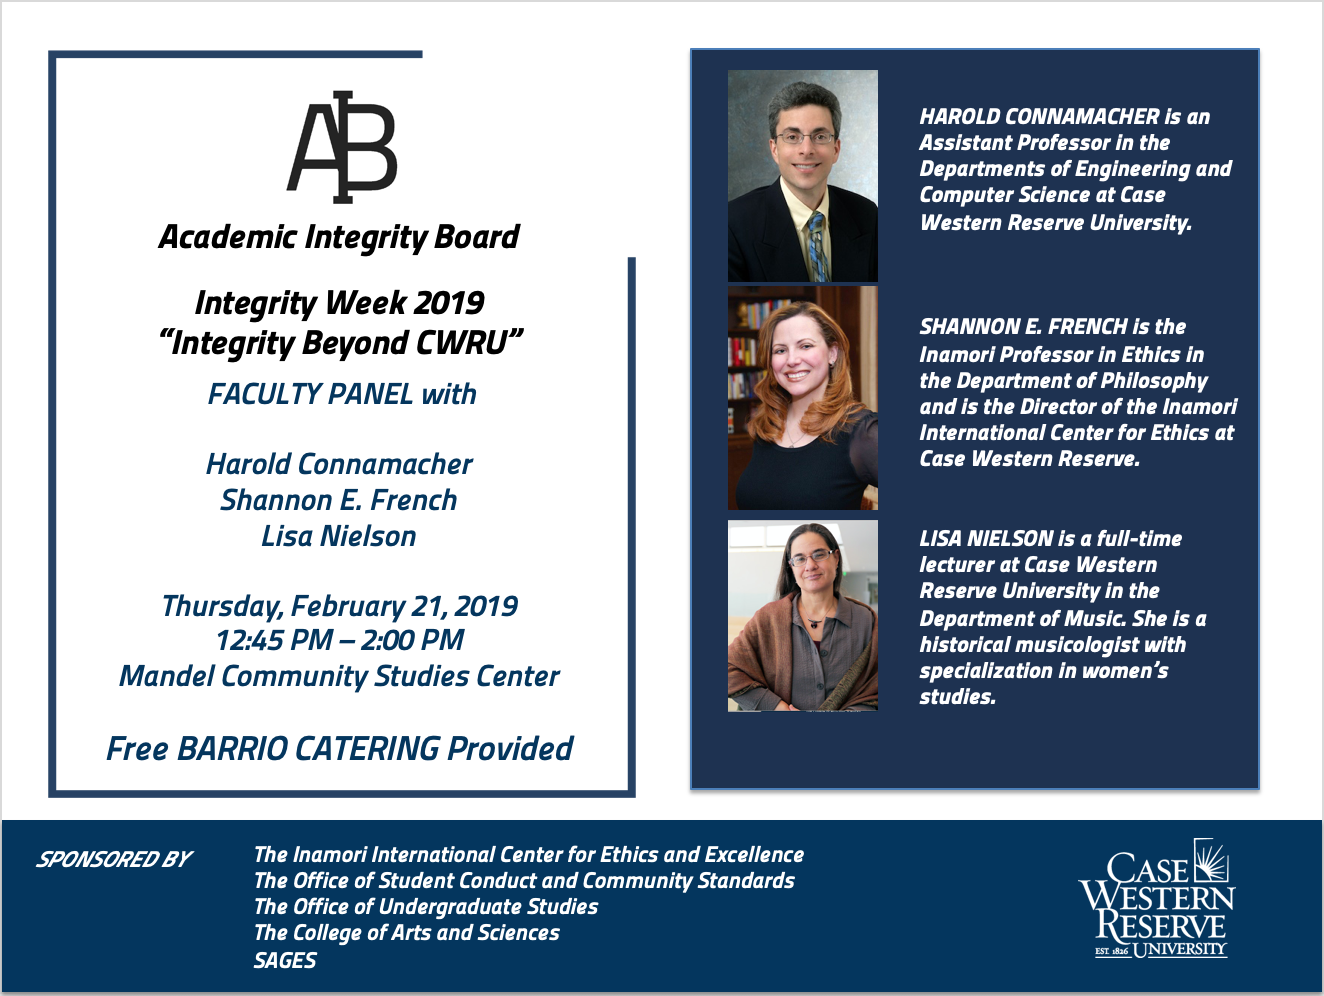 Integrity Week Faculty Panel Flyer - Feb 21 2019